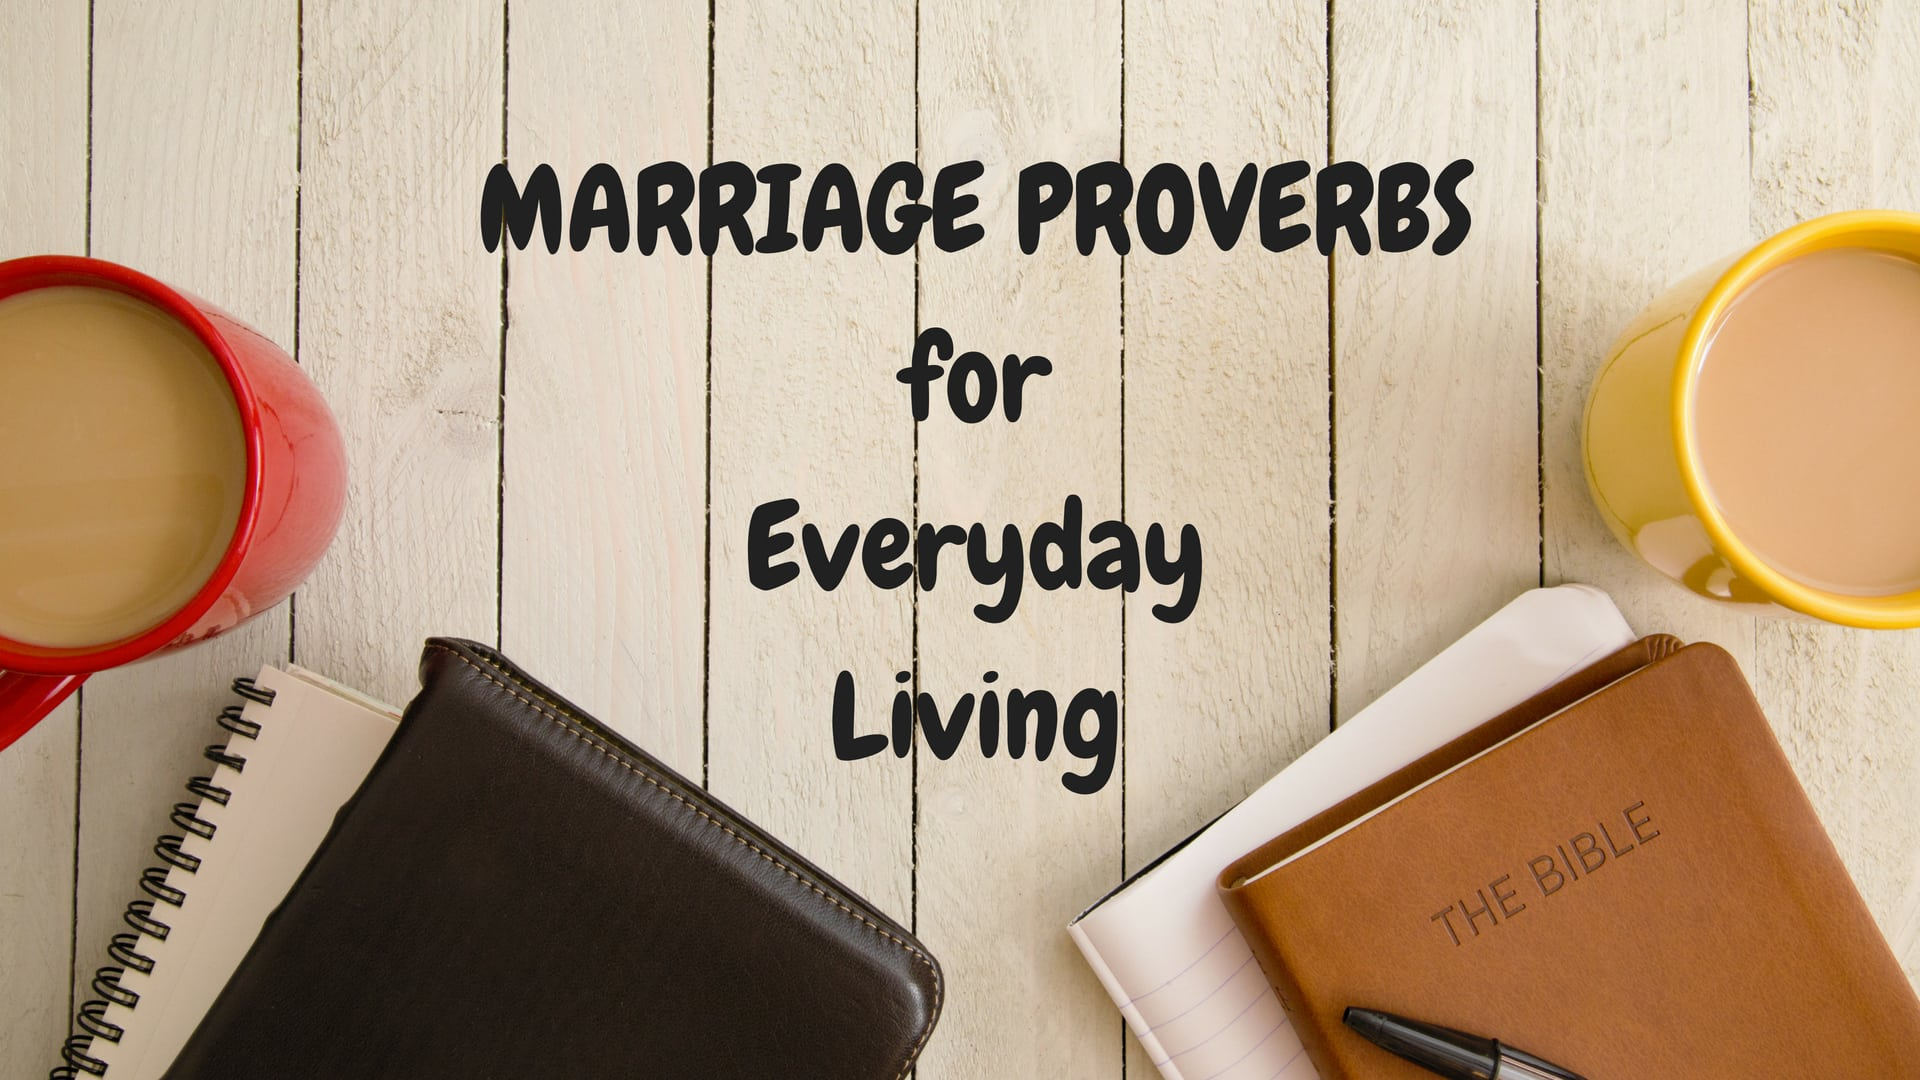 Marriage Proverbs for Everyday Living - Stock Adobe - Canva